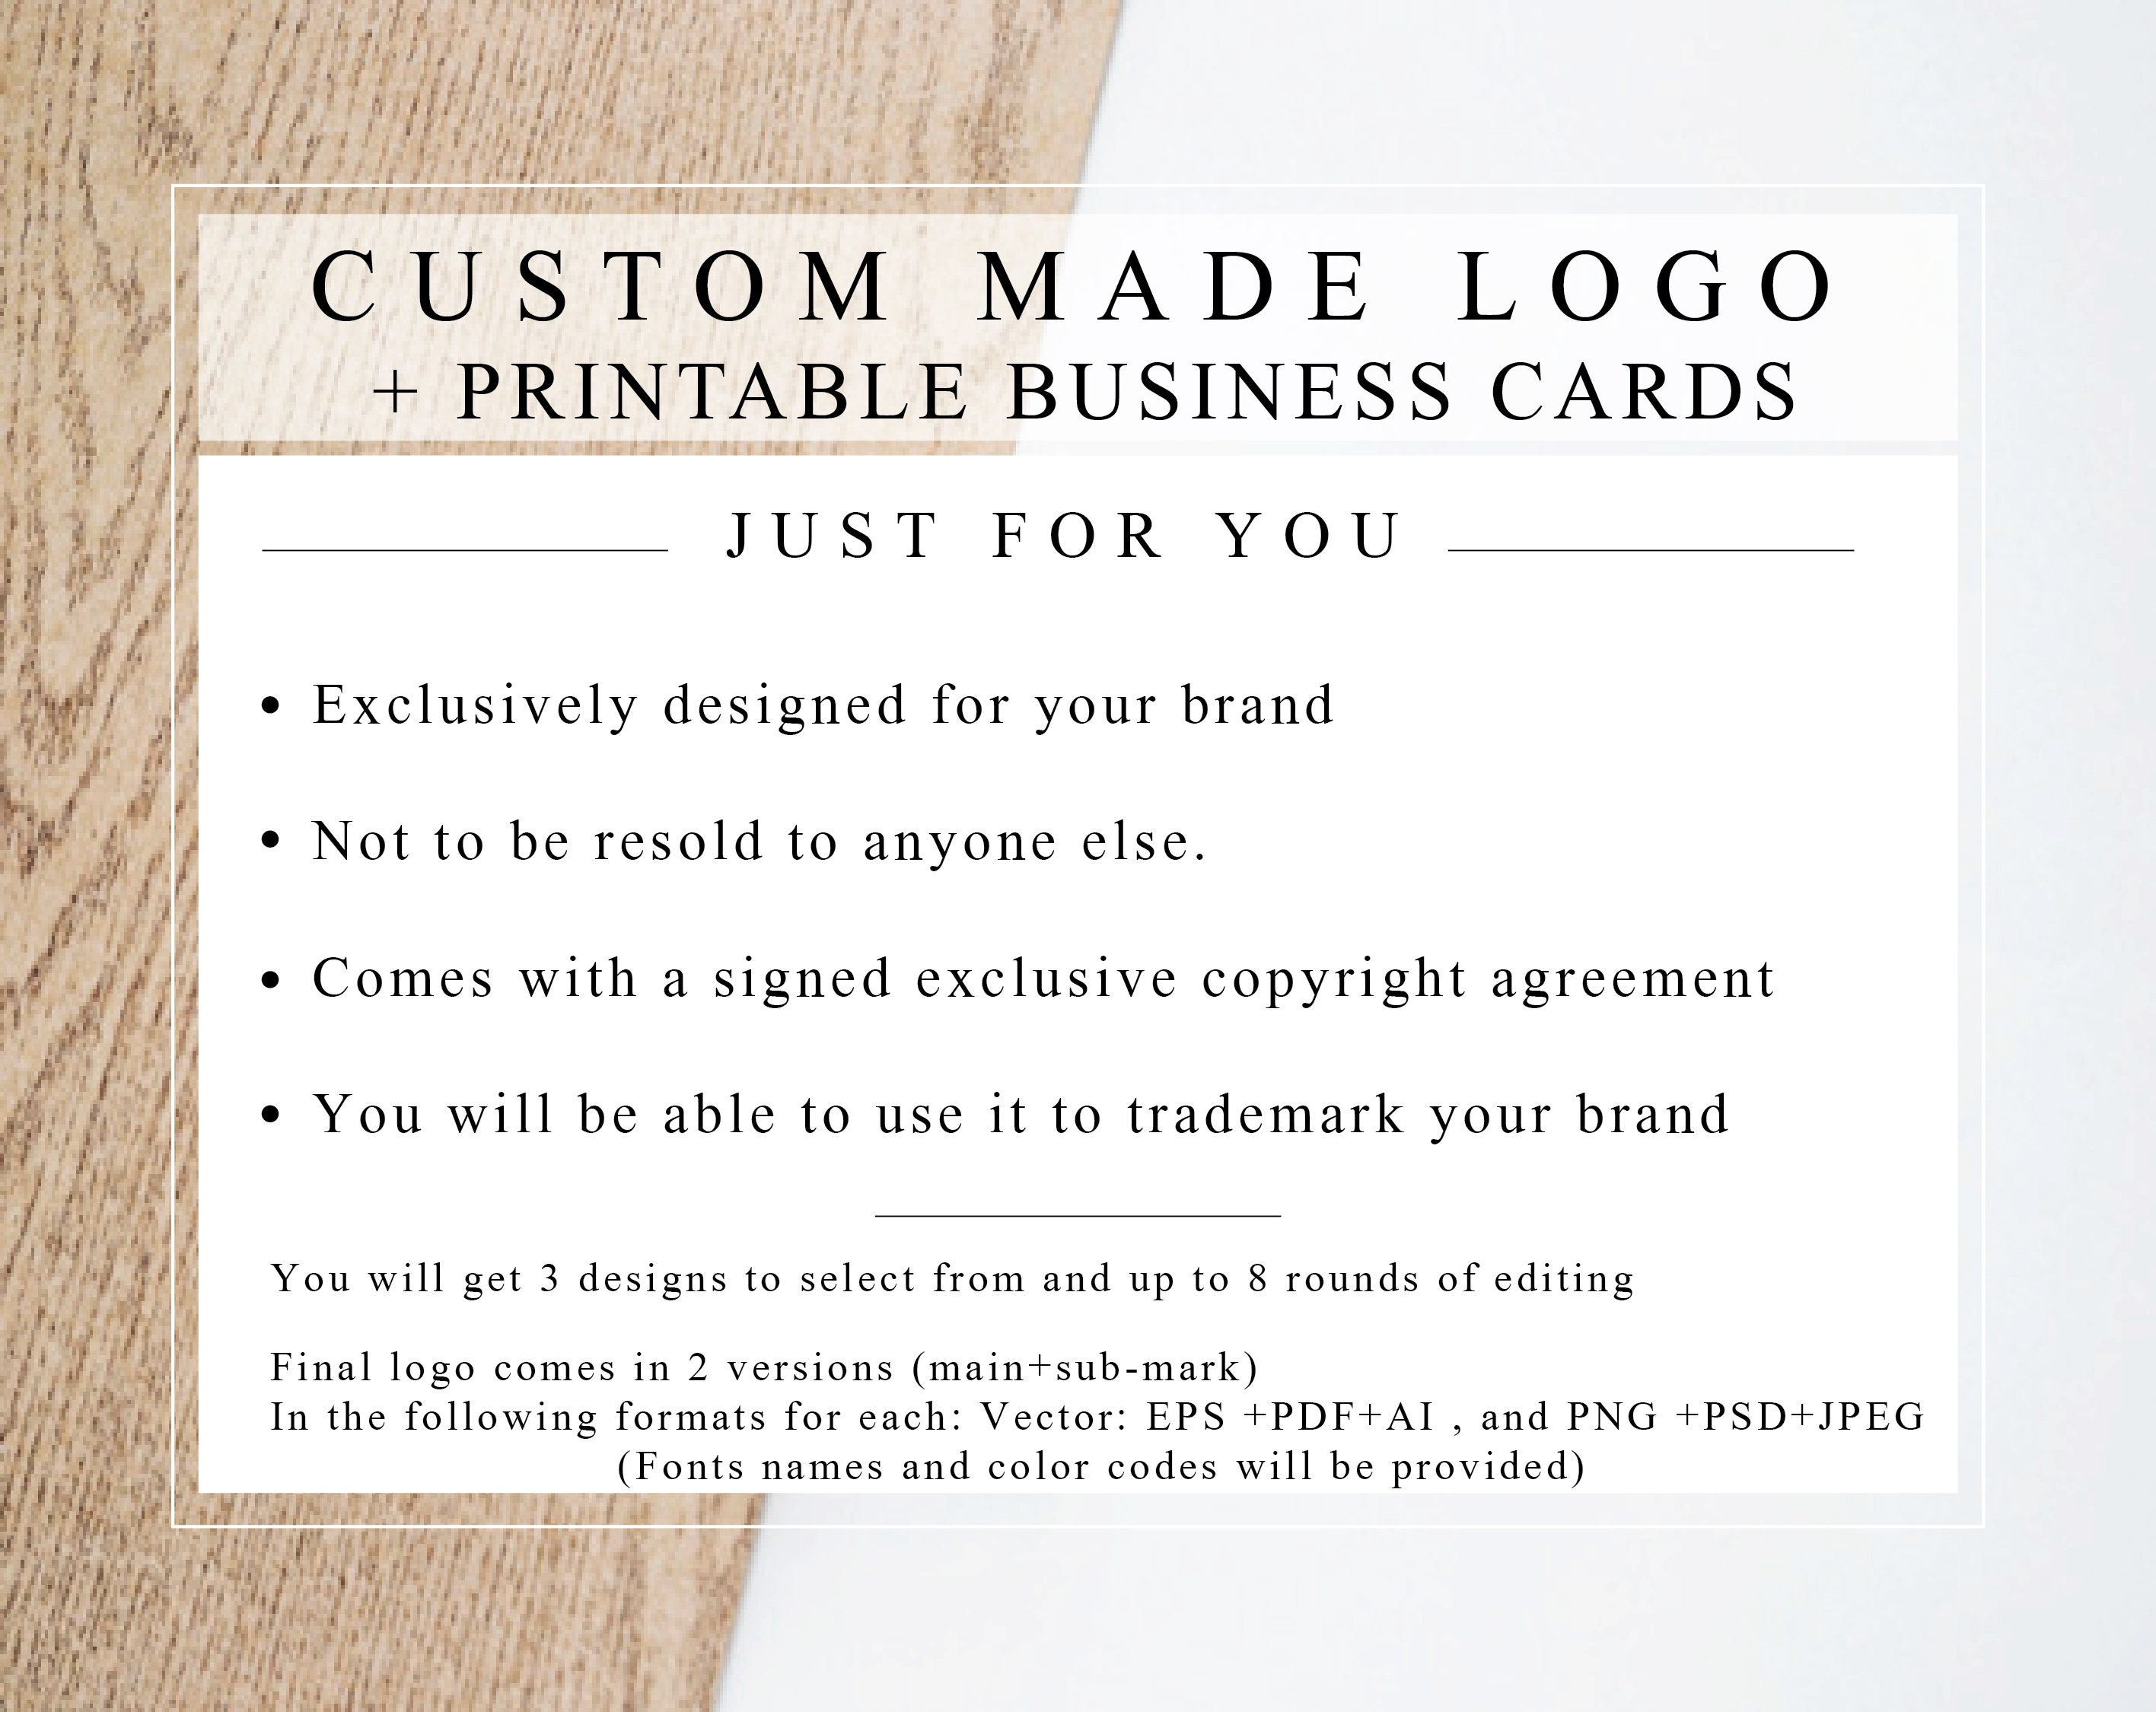 Custom Made Logo + Business-card design with EXCLUSIVE LICENCE just AGREEMENT- Designed just LICENCE for you. 7bc9a1